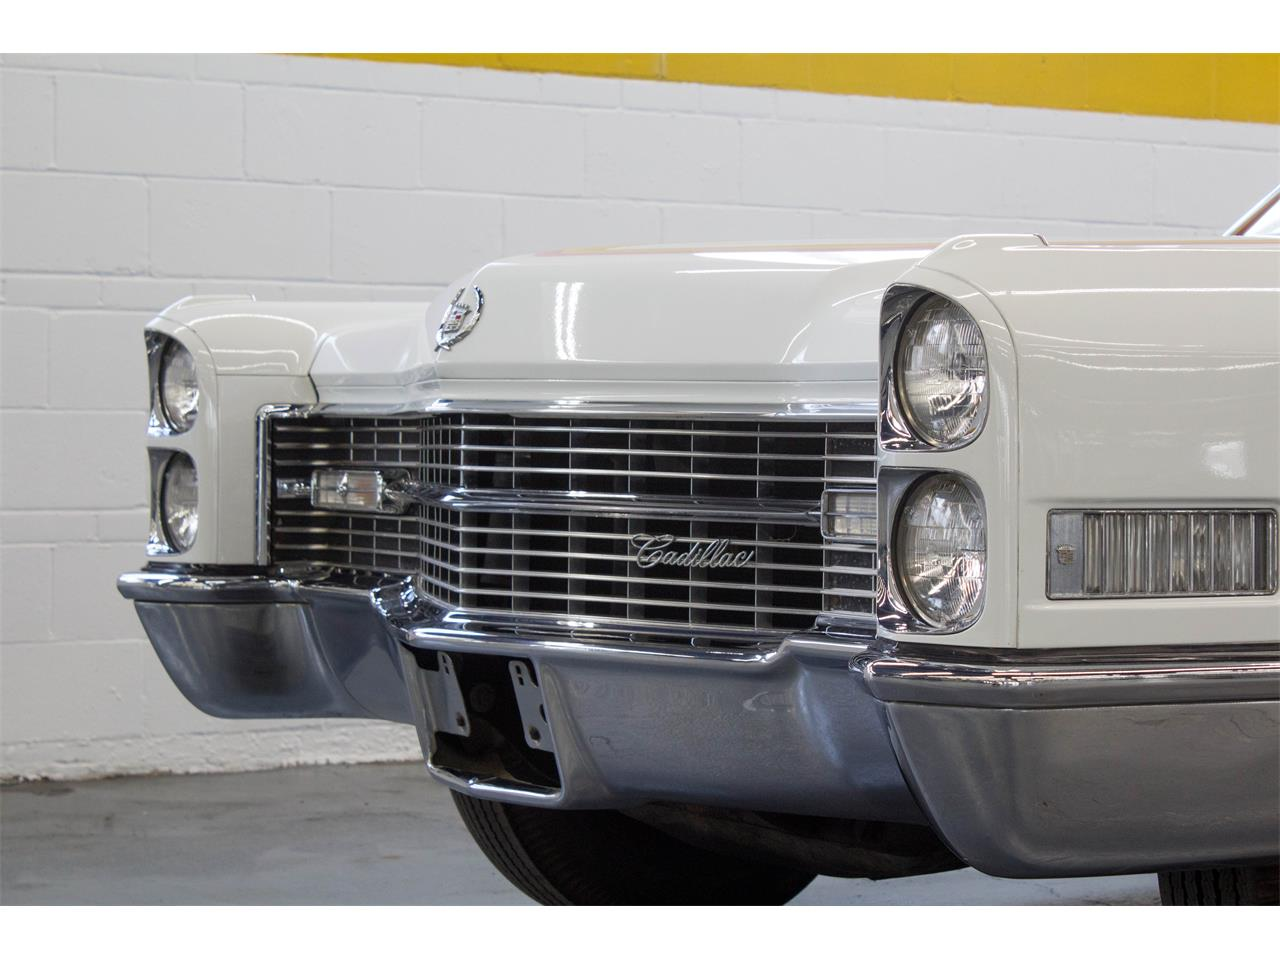 Large Picture of Classic '66 Fleetwood Limousine - $49,995.00 Offered by John Scotti Classic Cars - NKXQ